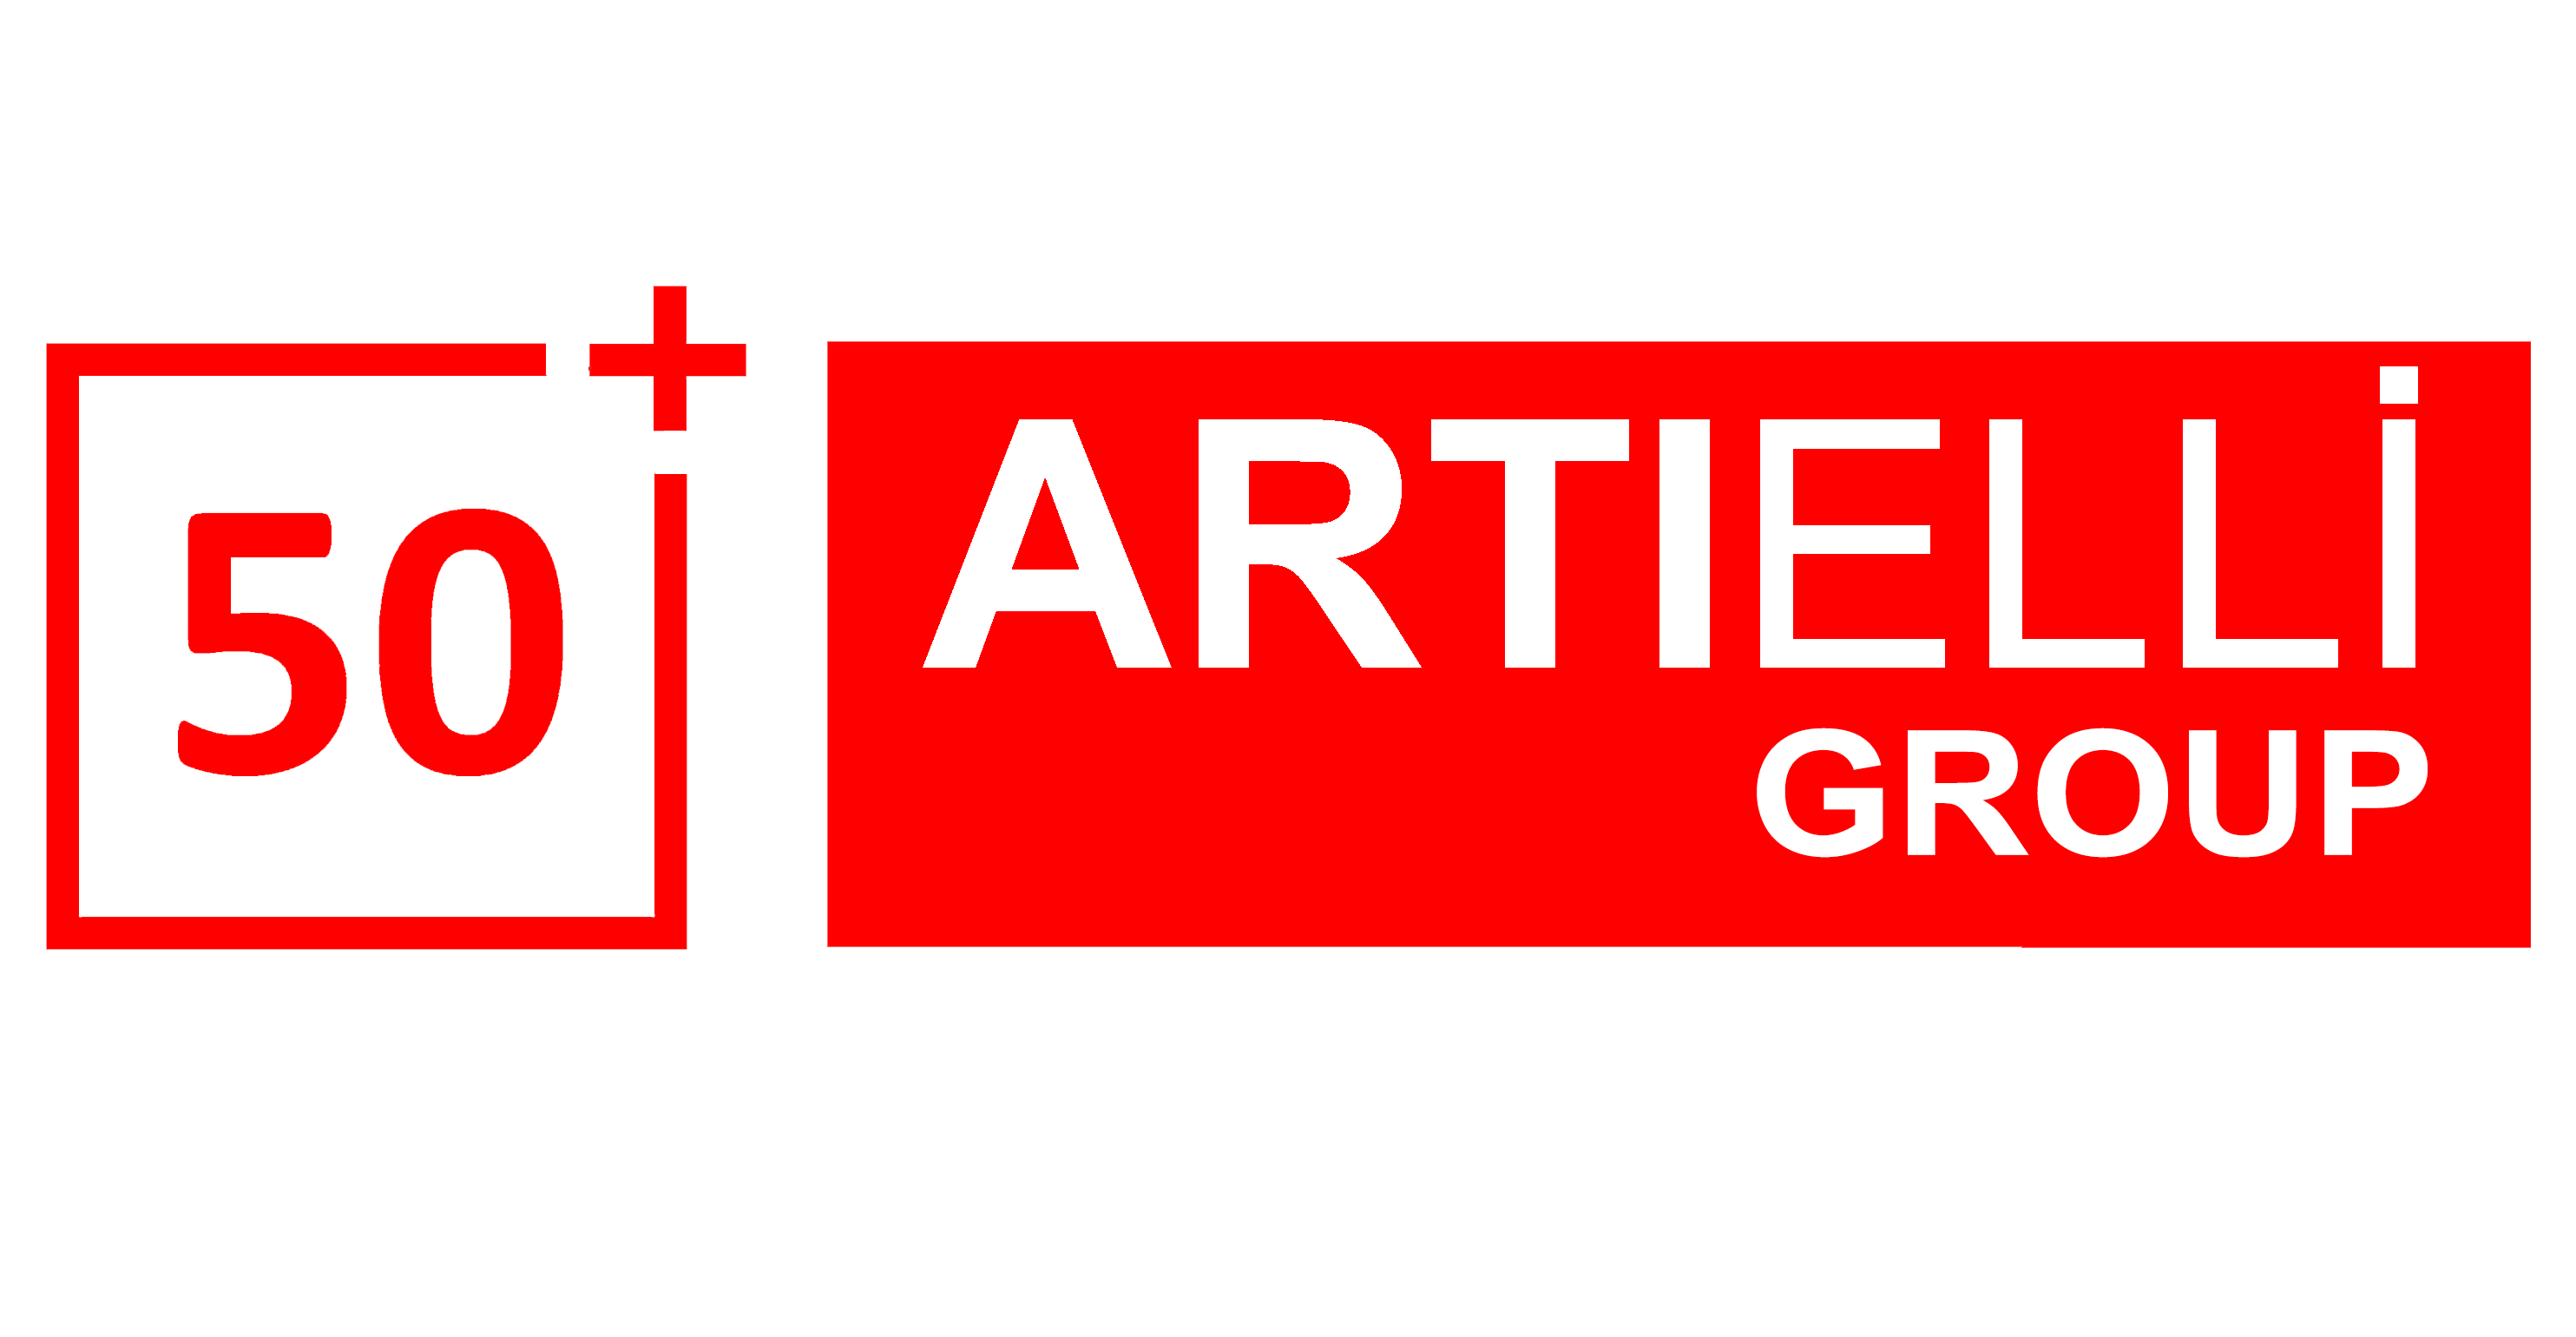 artielligroup.com